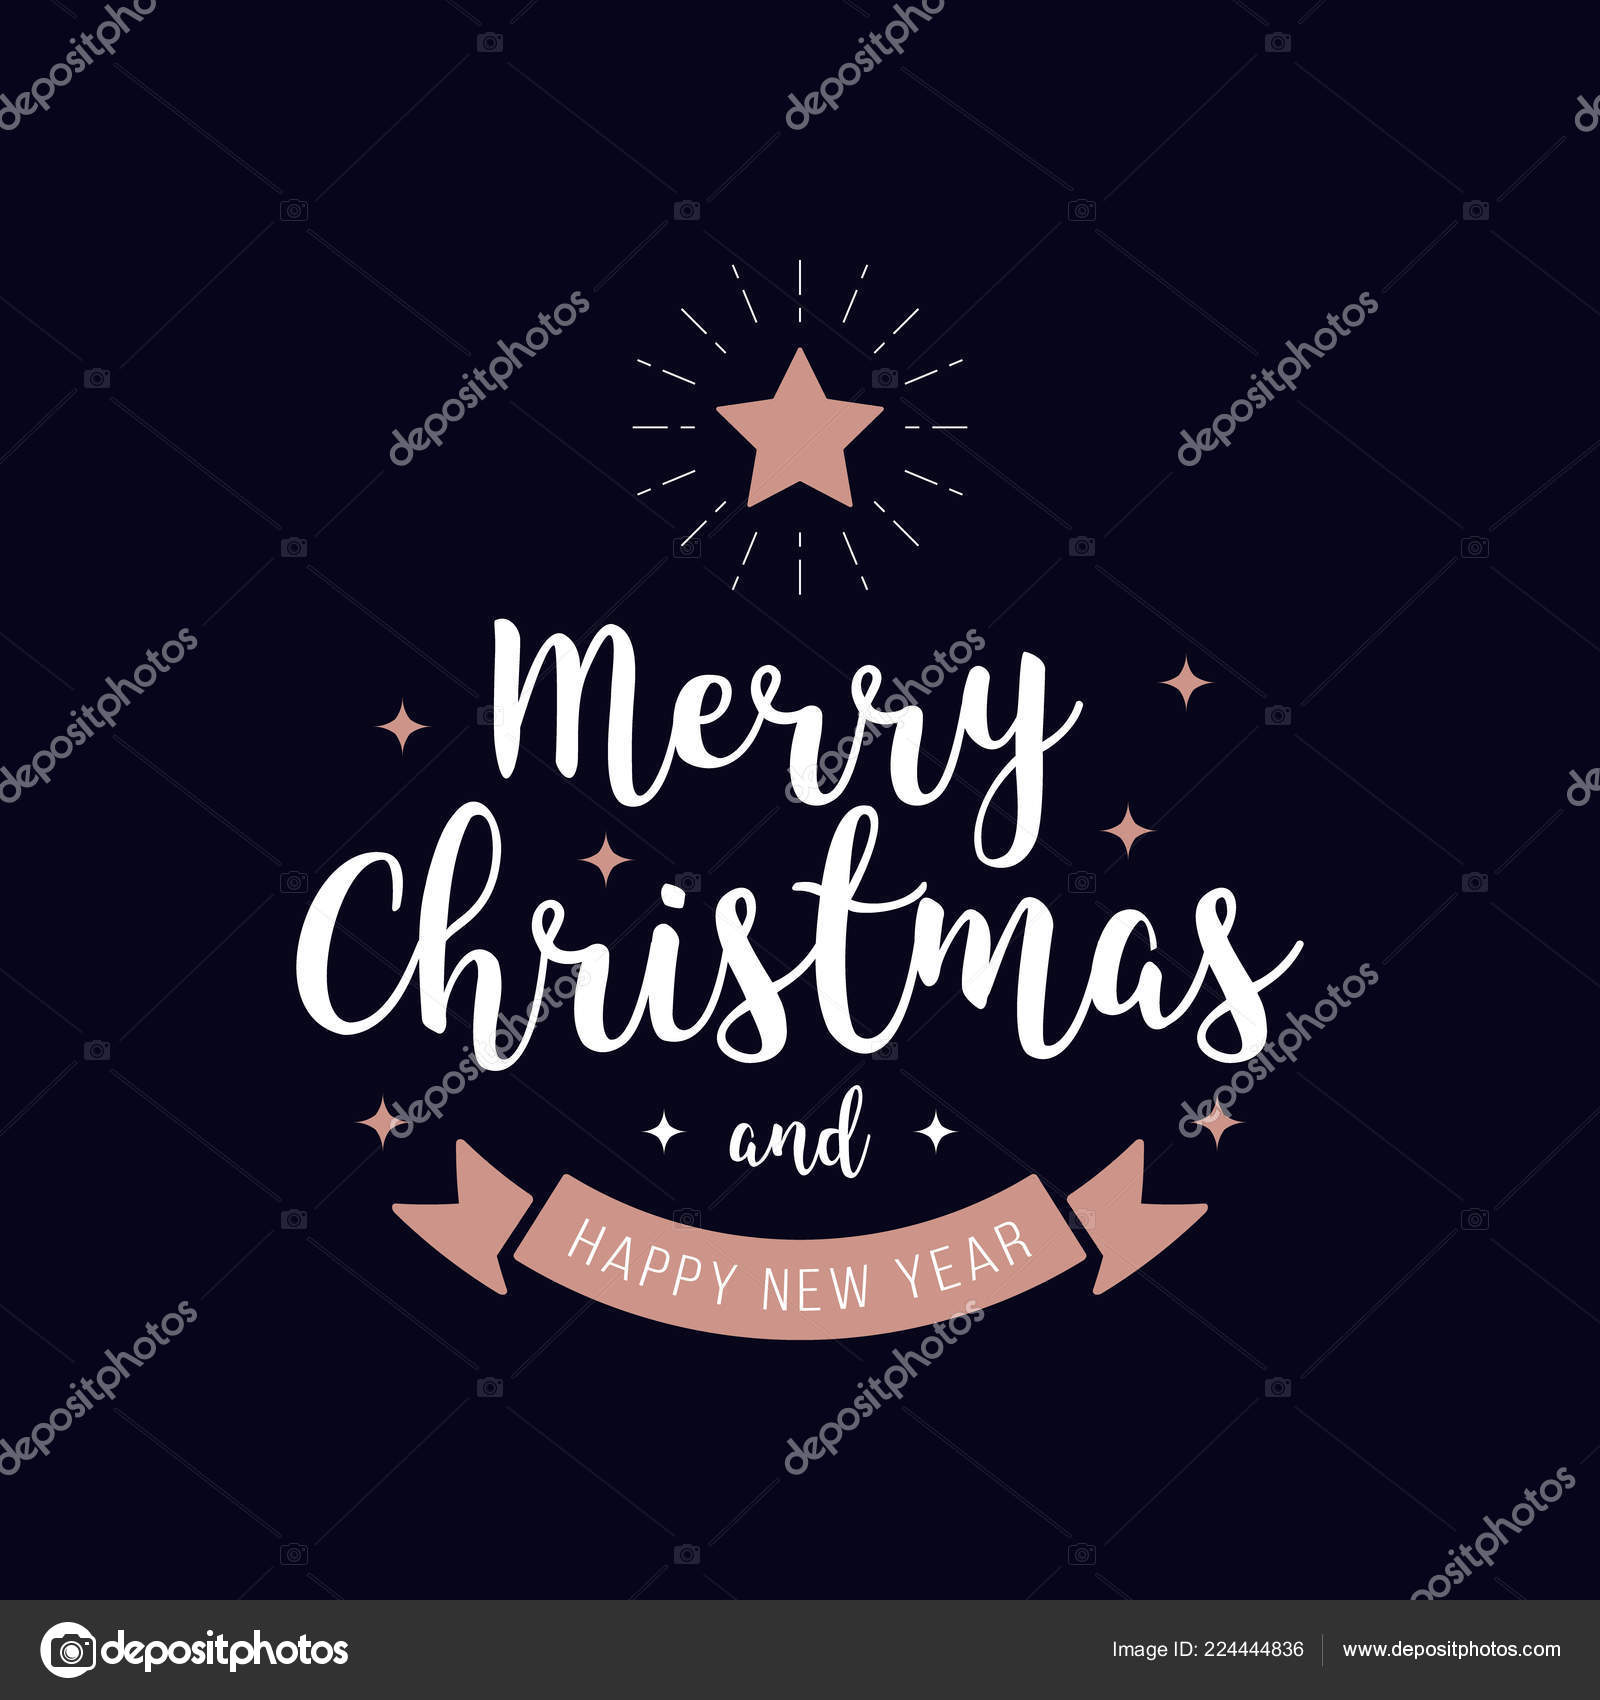 ᐈ Christmas Tree Wallpaper Iphone Stock Vectors Royalty Free Rose Gold Illustrations Illustrations Download On Depositphotos